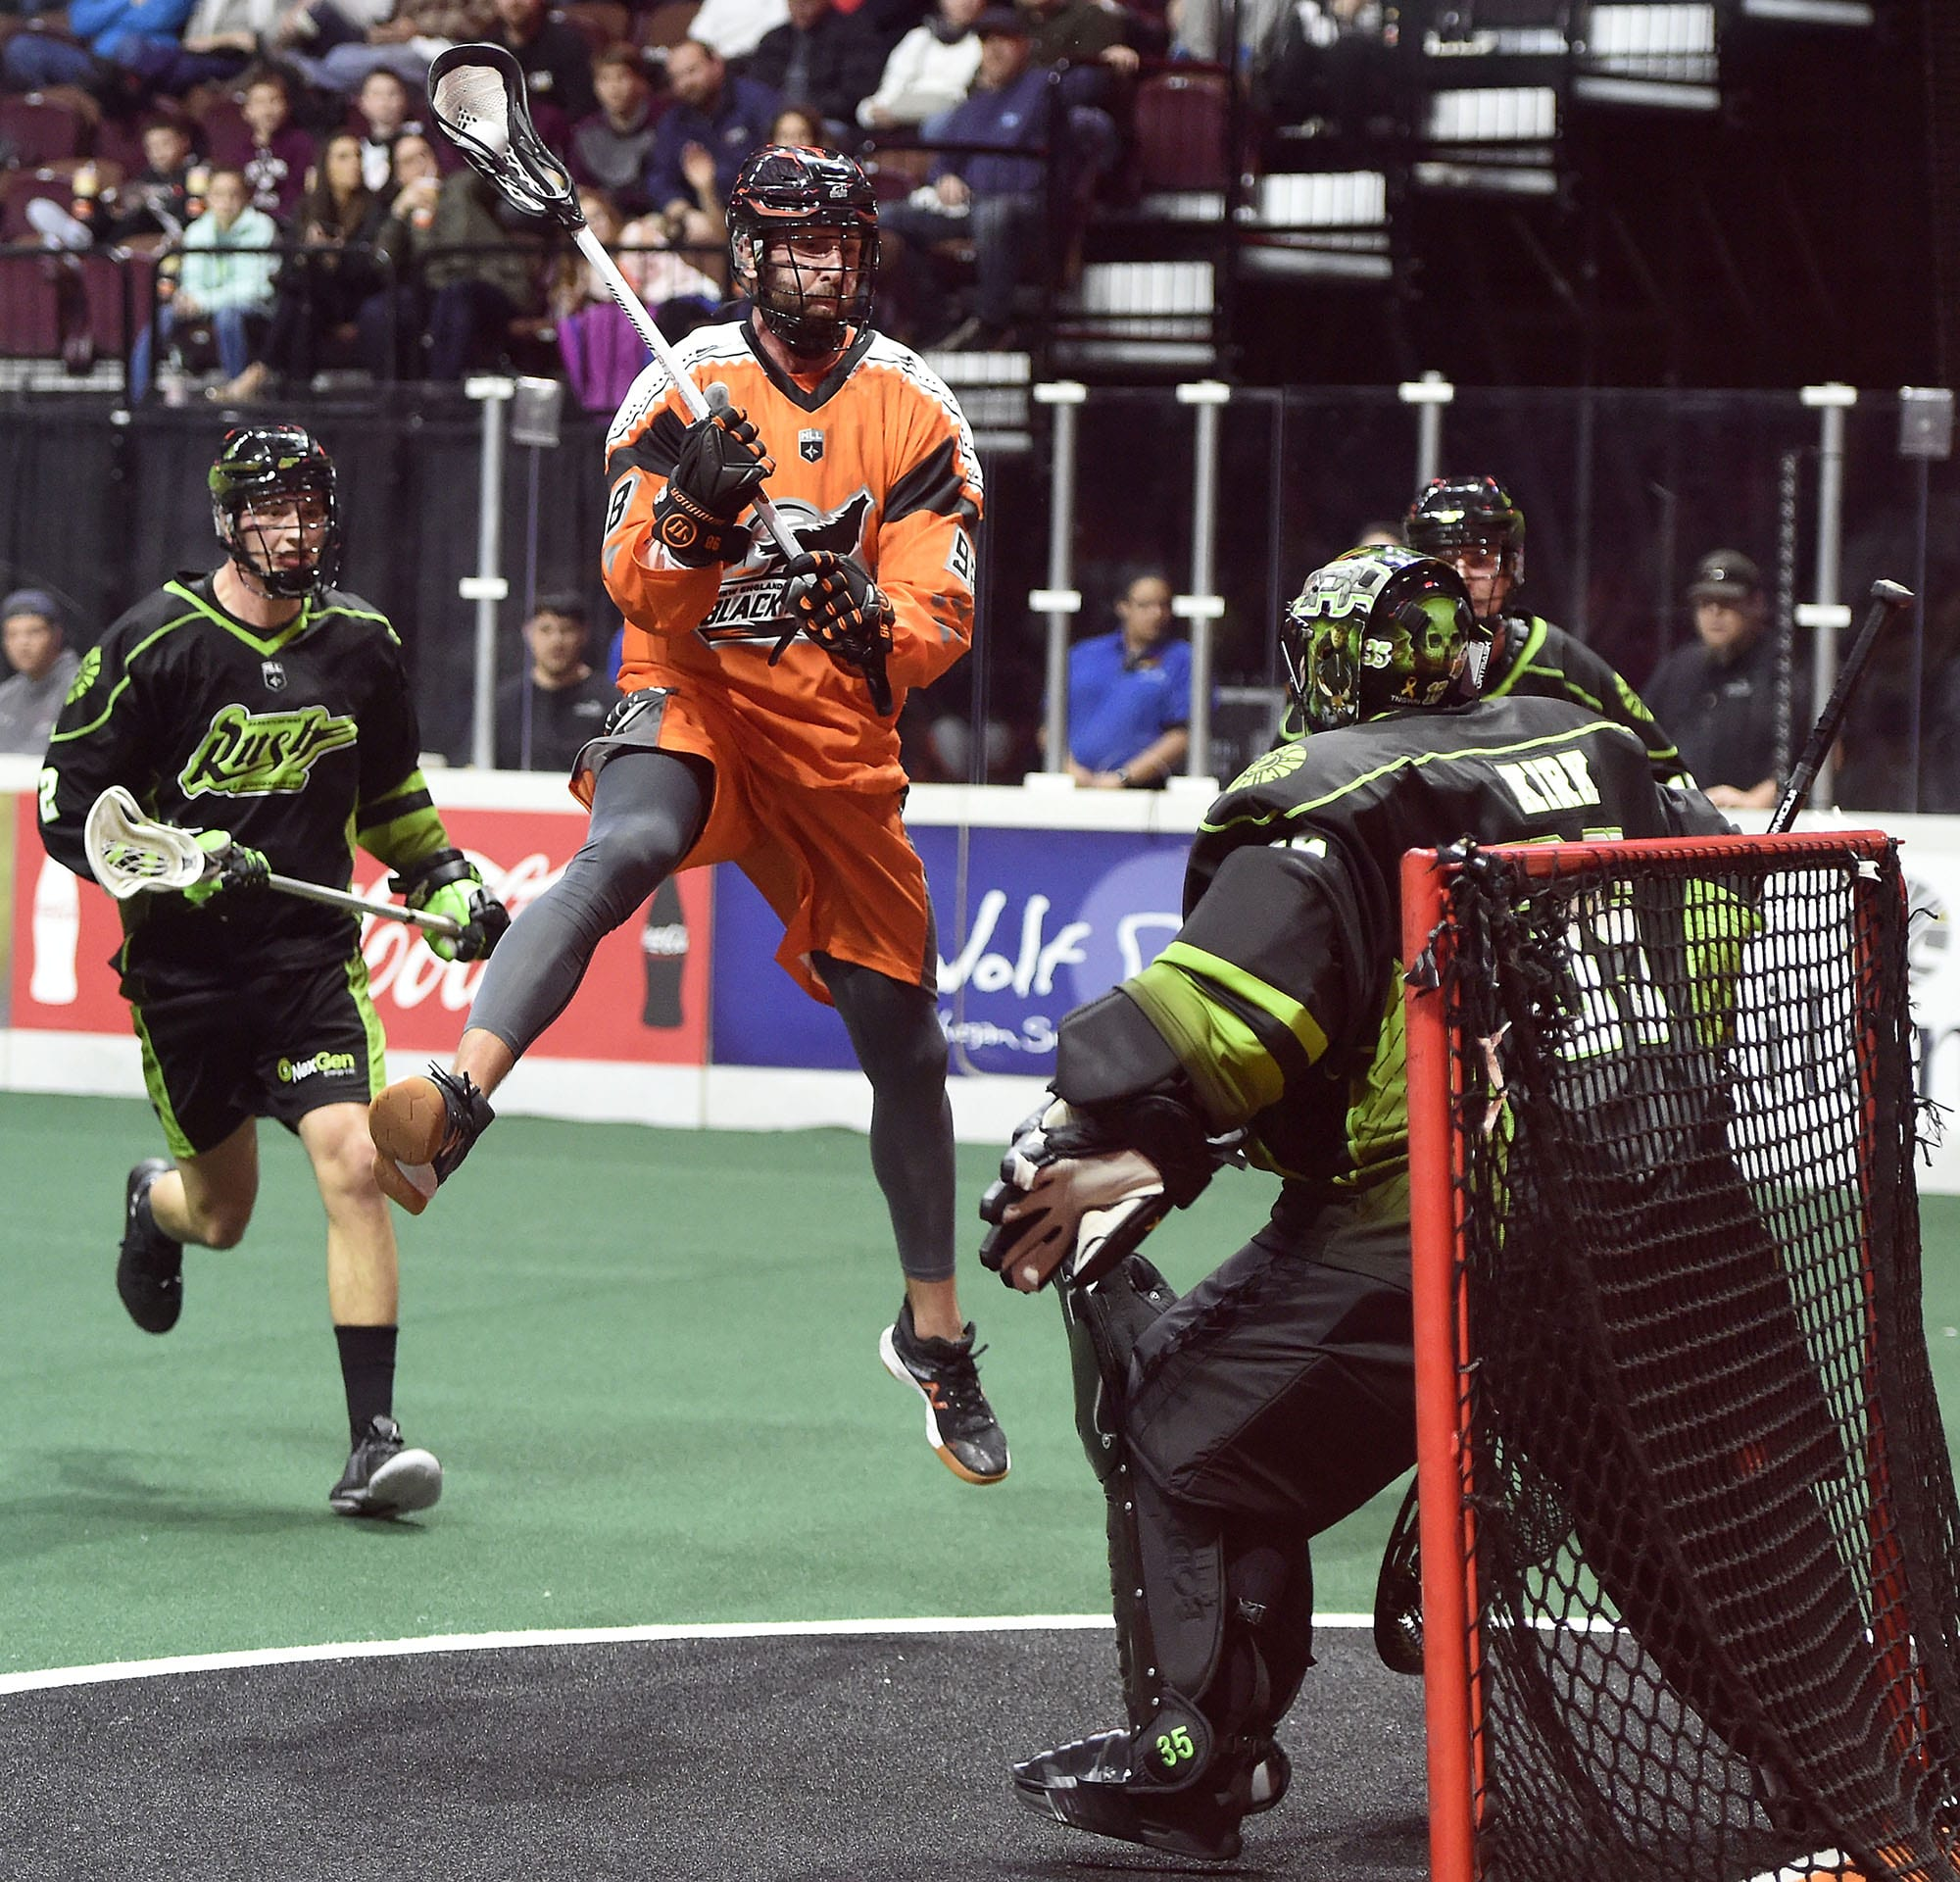 callum crawford nll national lacrosse league new england black wolves saskatchewan rush lacrosse classified